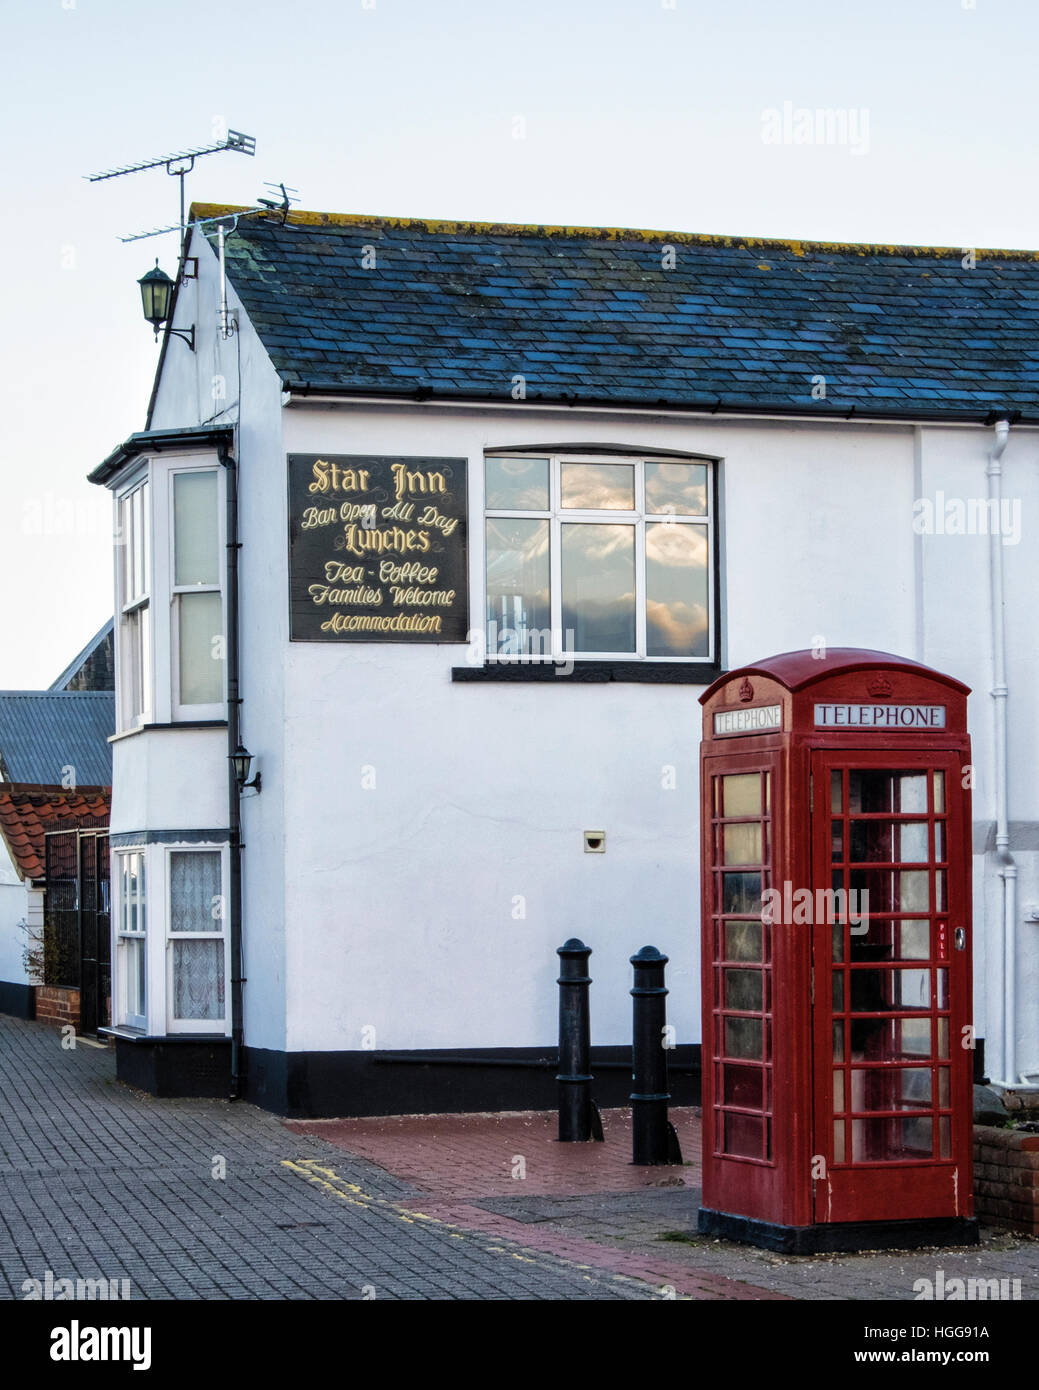 Burnham on Crouch,Essex. Star Inn pub & old red telephone box at Riverside village & holiday resort on tidal - Stock Image